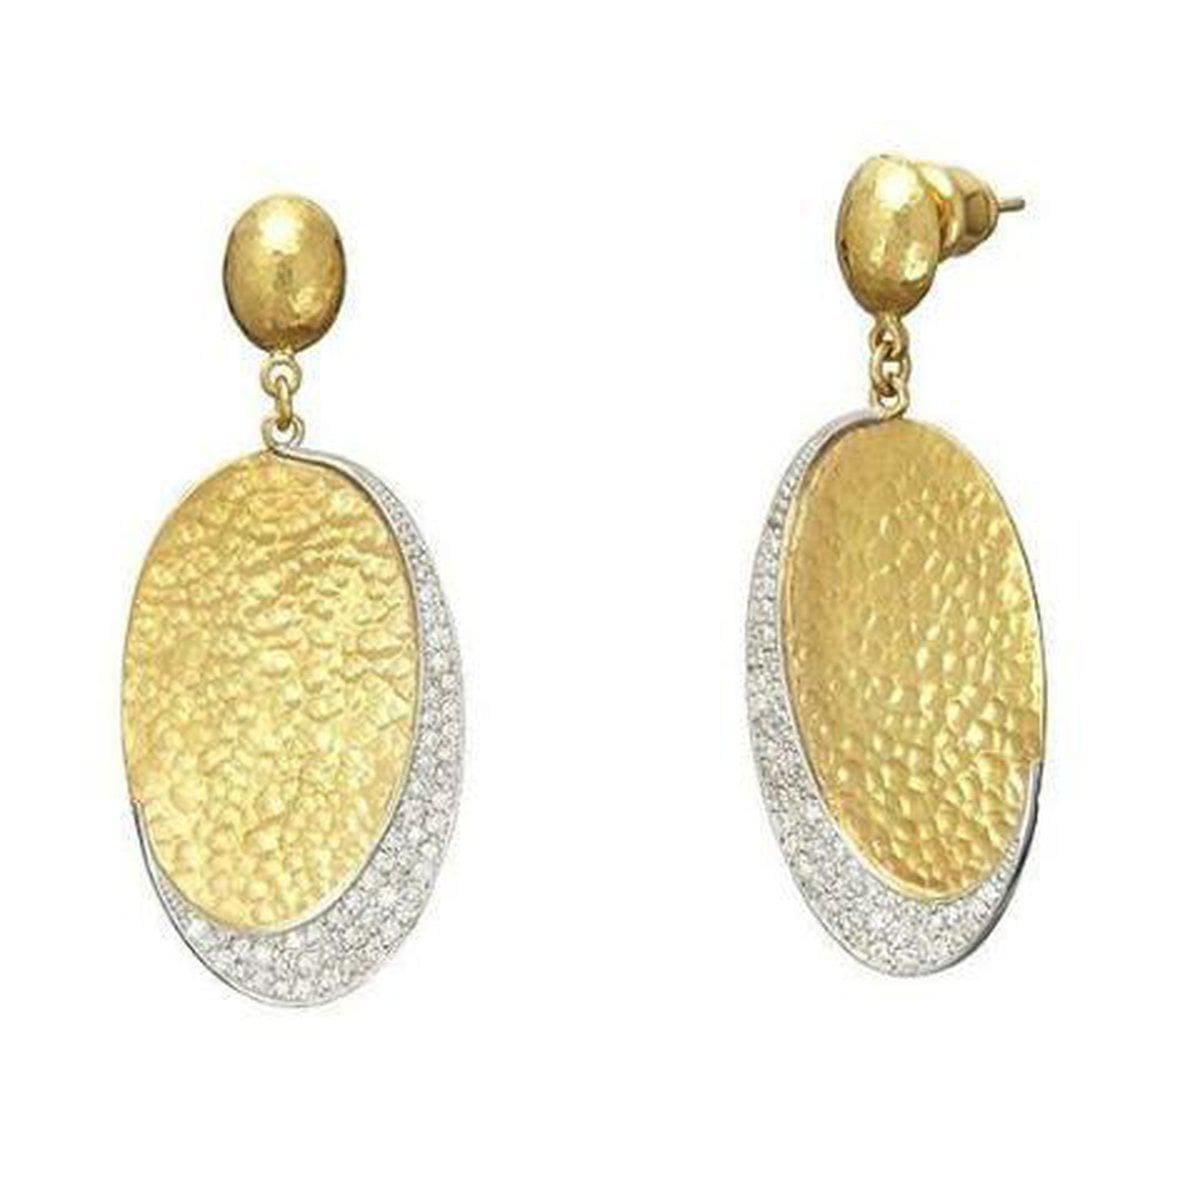 Mango 24K Gold White Diamond Earrings - EOL-LSPV-OV30-DI-GURHAN-Renee Taylor Gallery